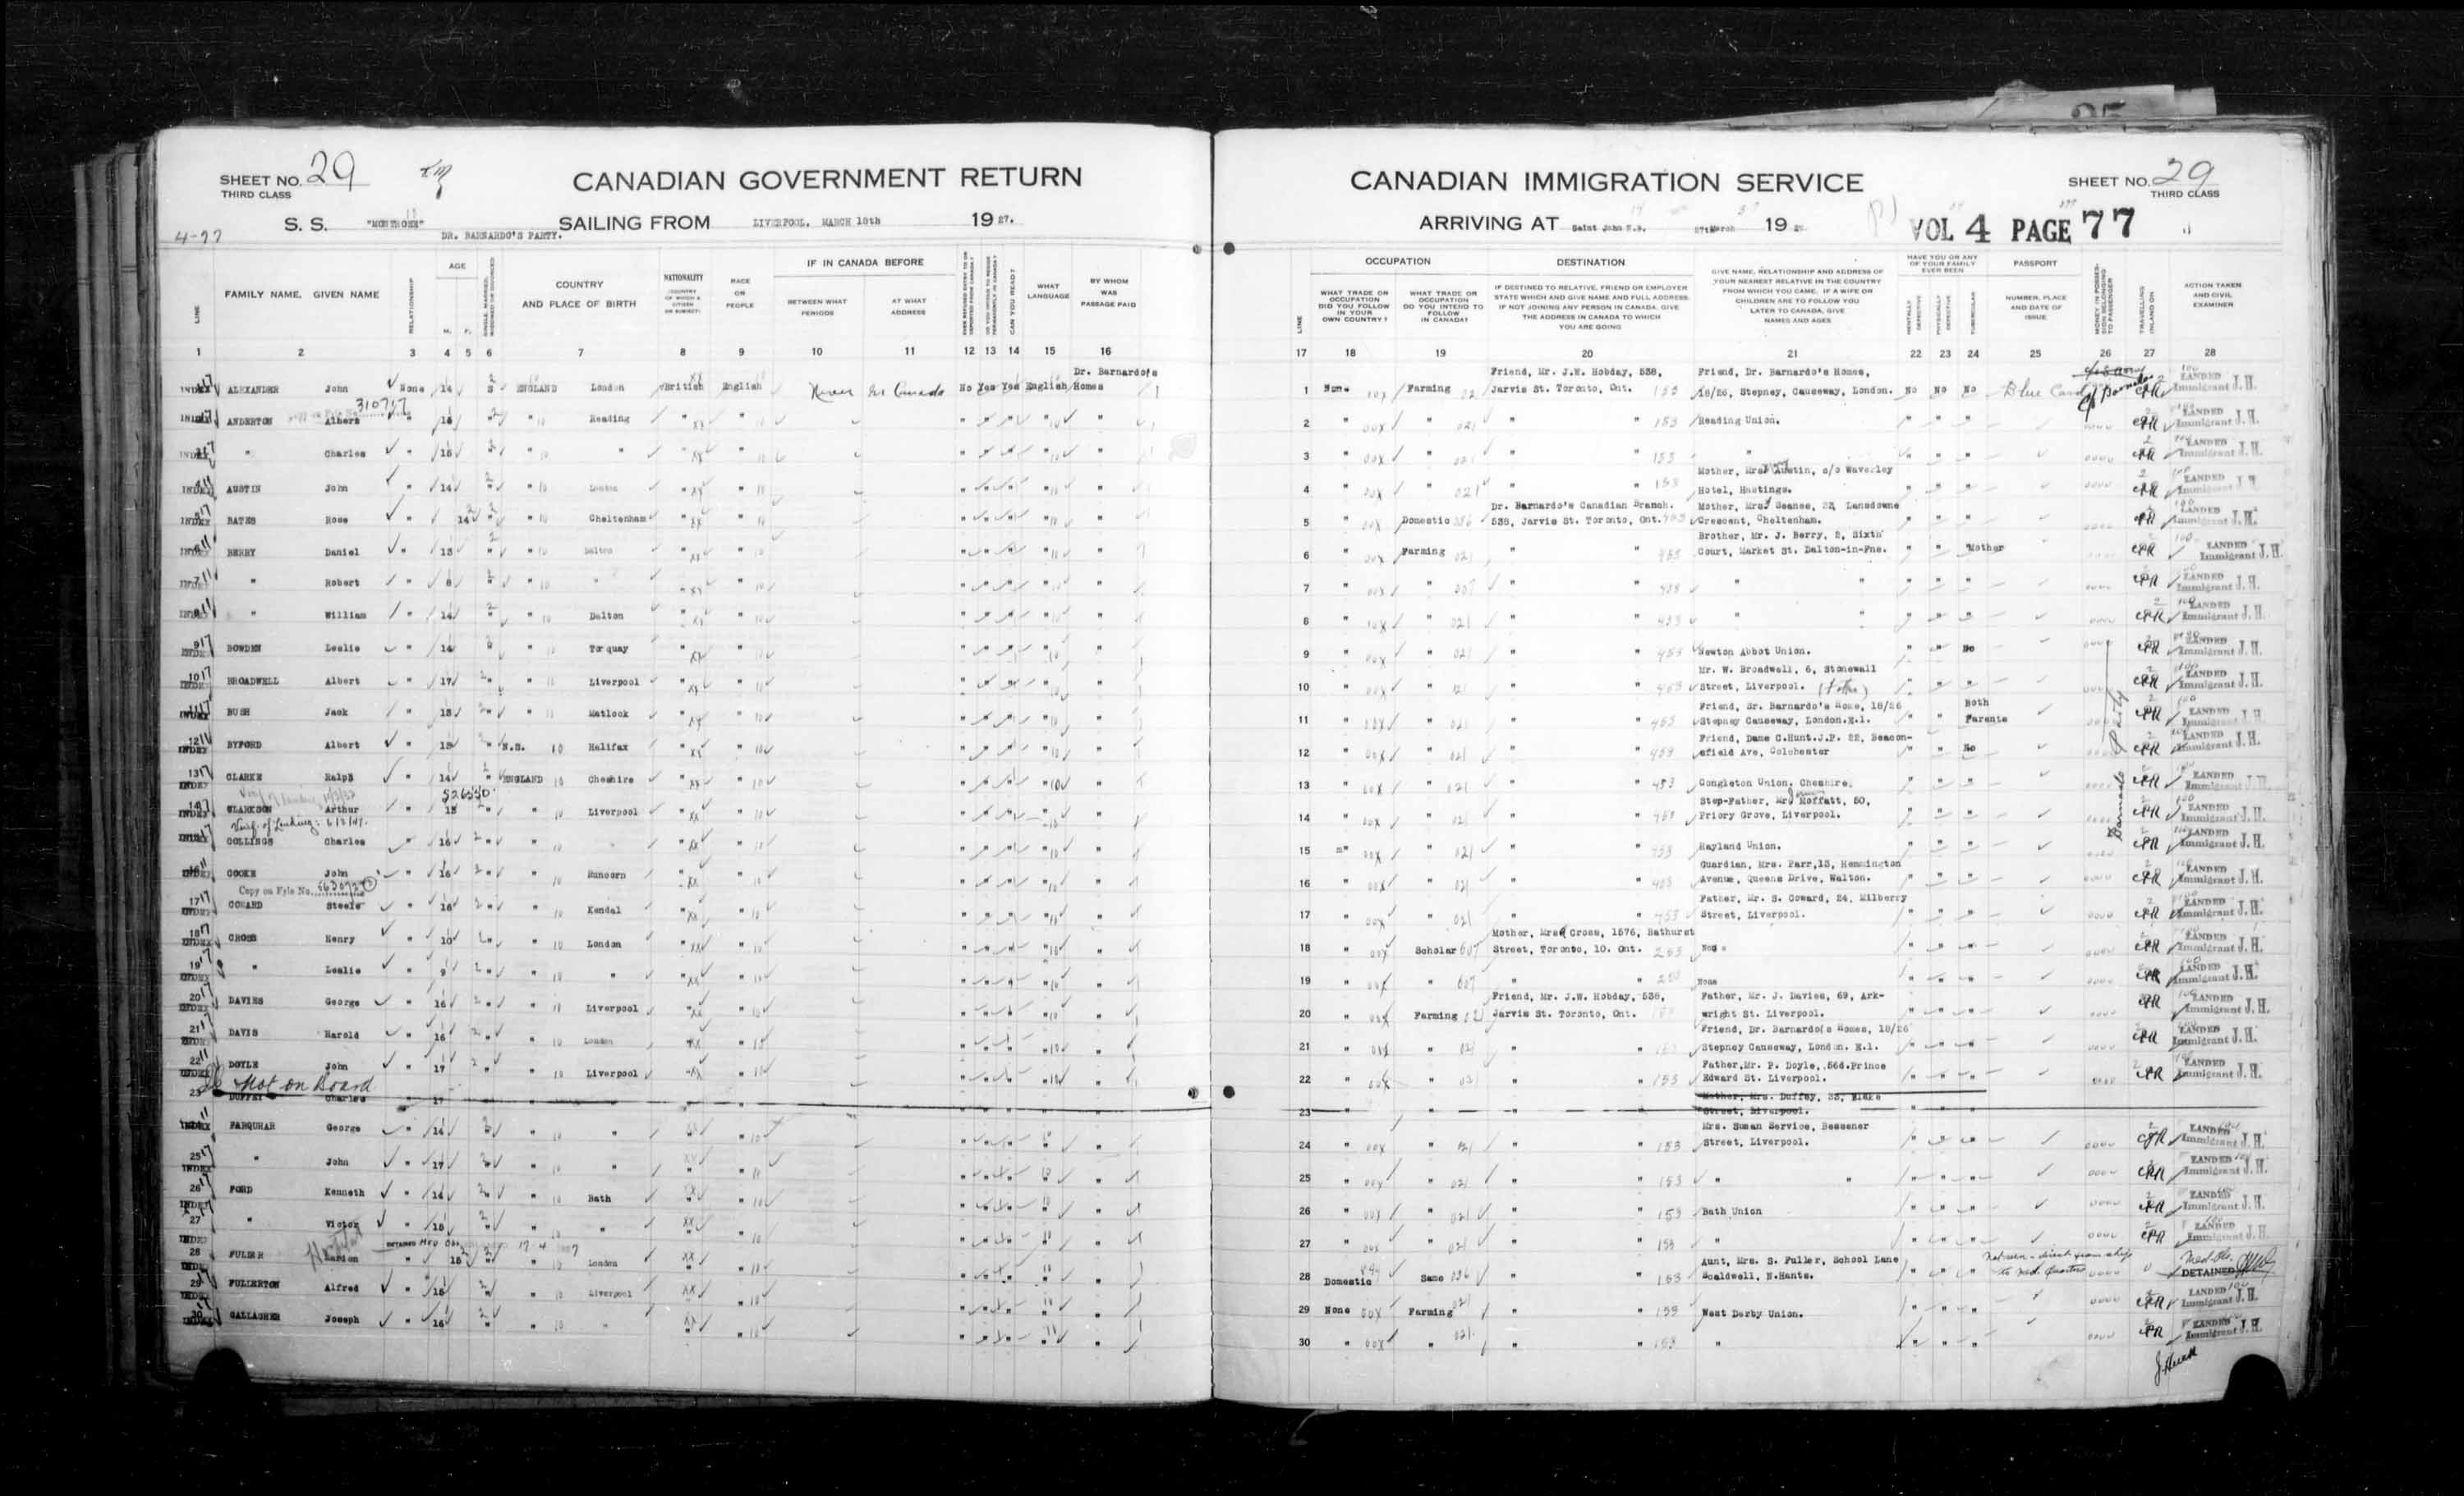 Title: Passenger Lists: Saint John (1925-1935) - Mikan Number: 134836 - Microform: t-14850